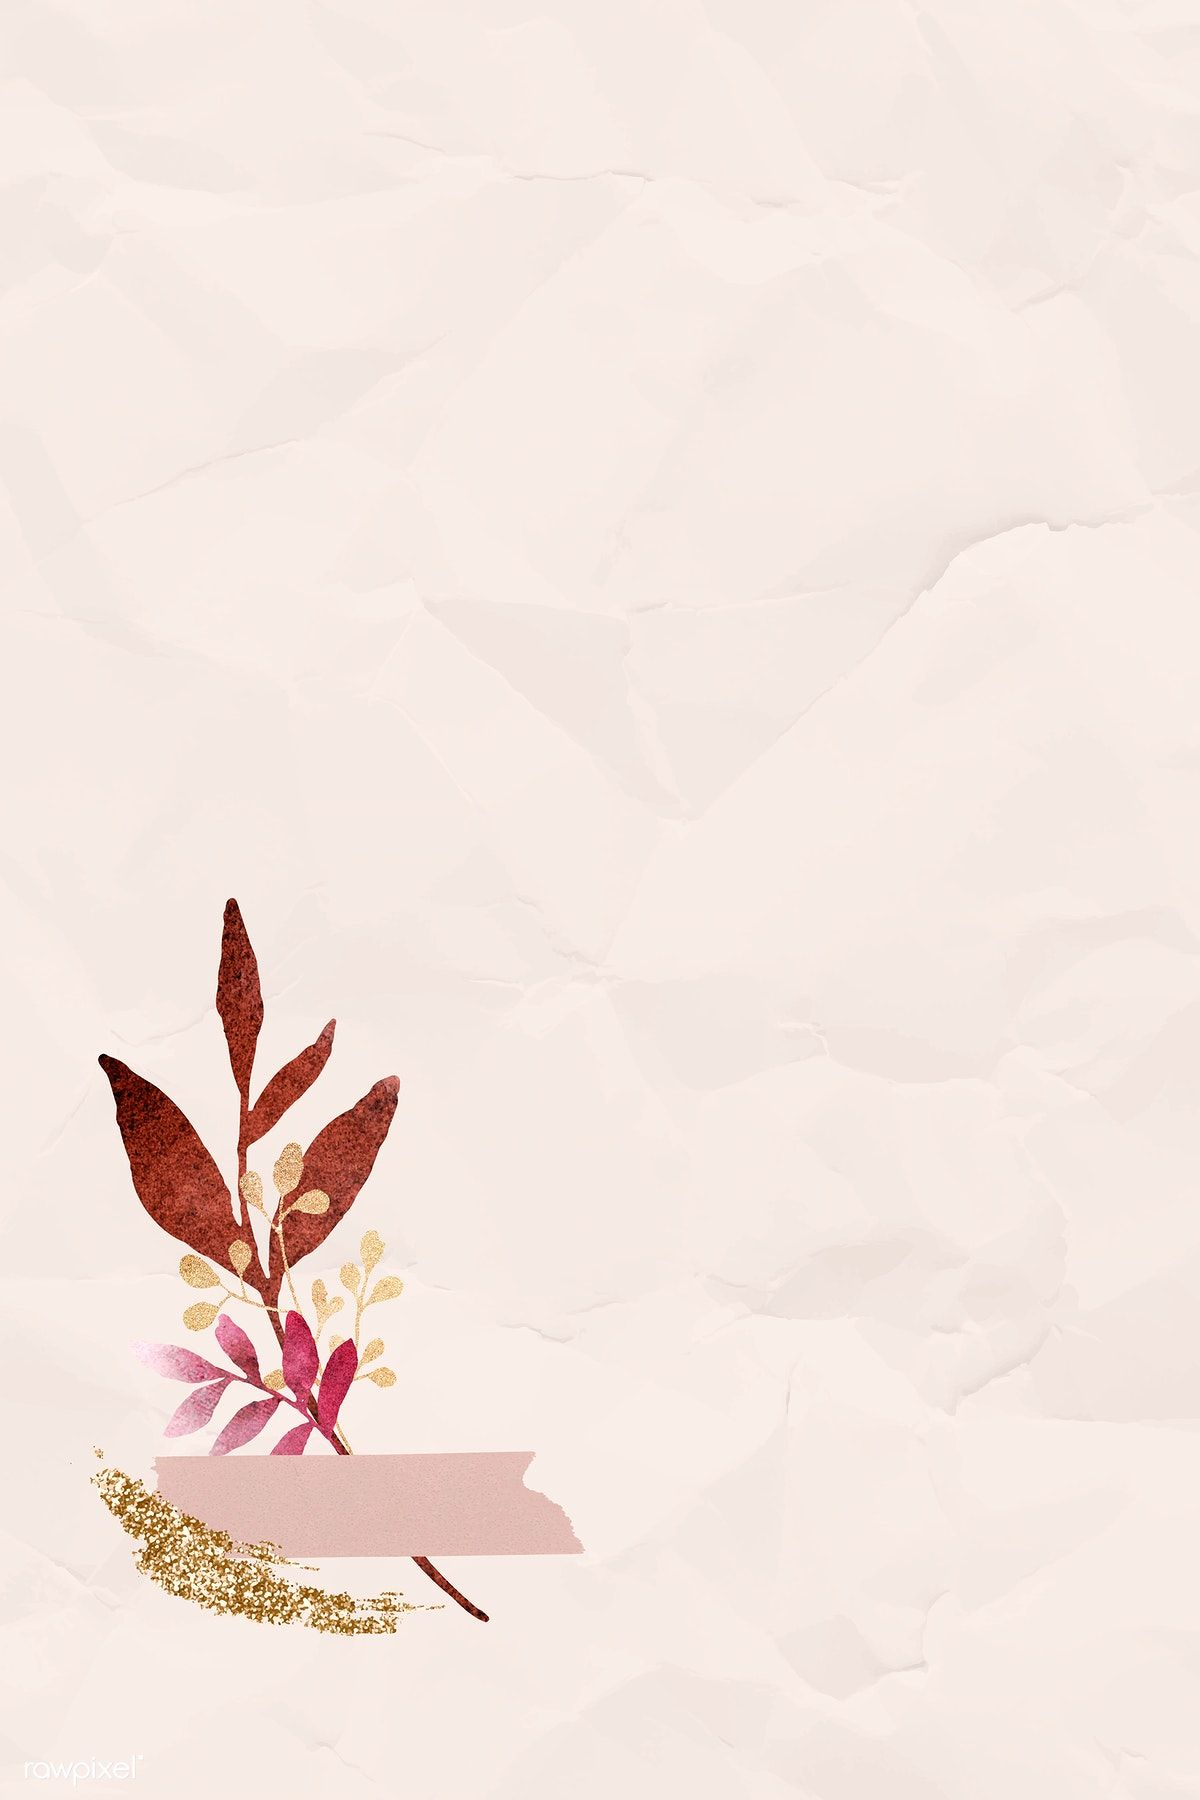 Download premium vector of Christmas watercolor leafy on beige  wrinkled